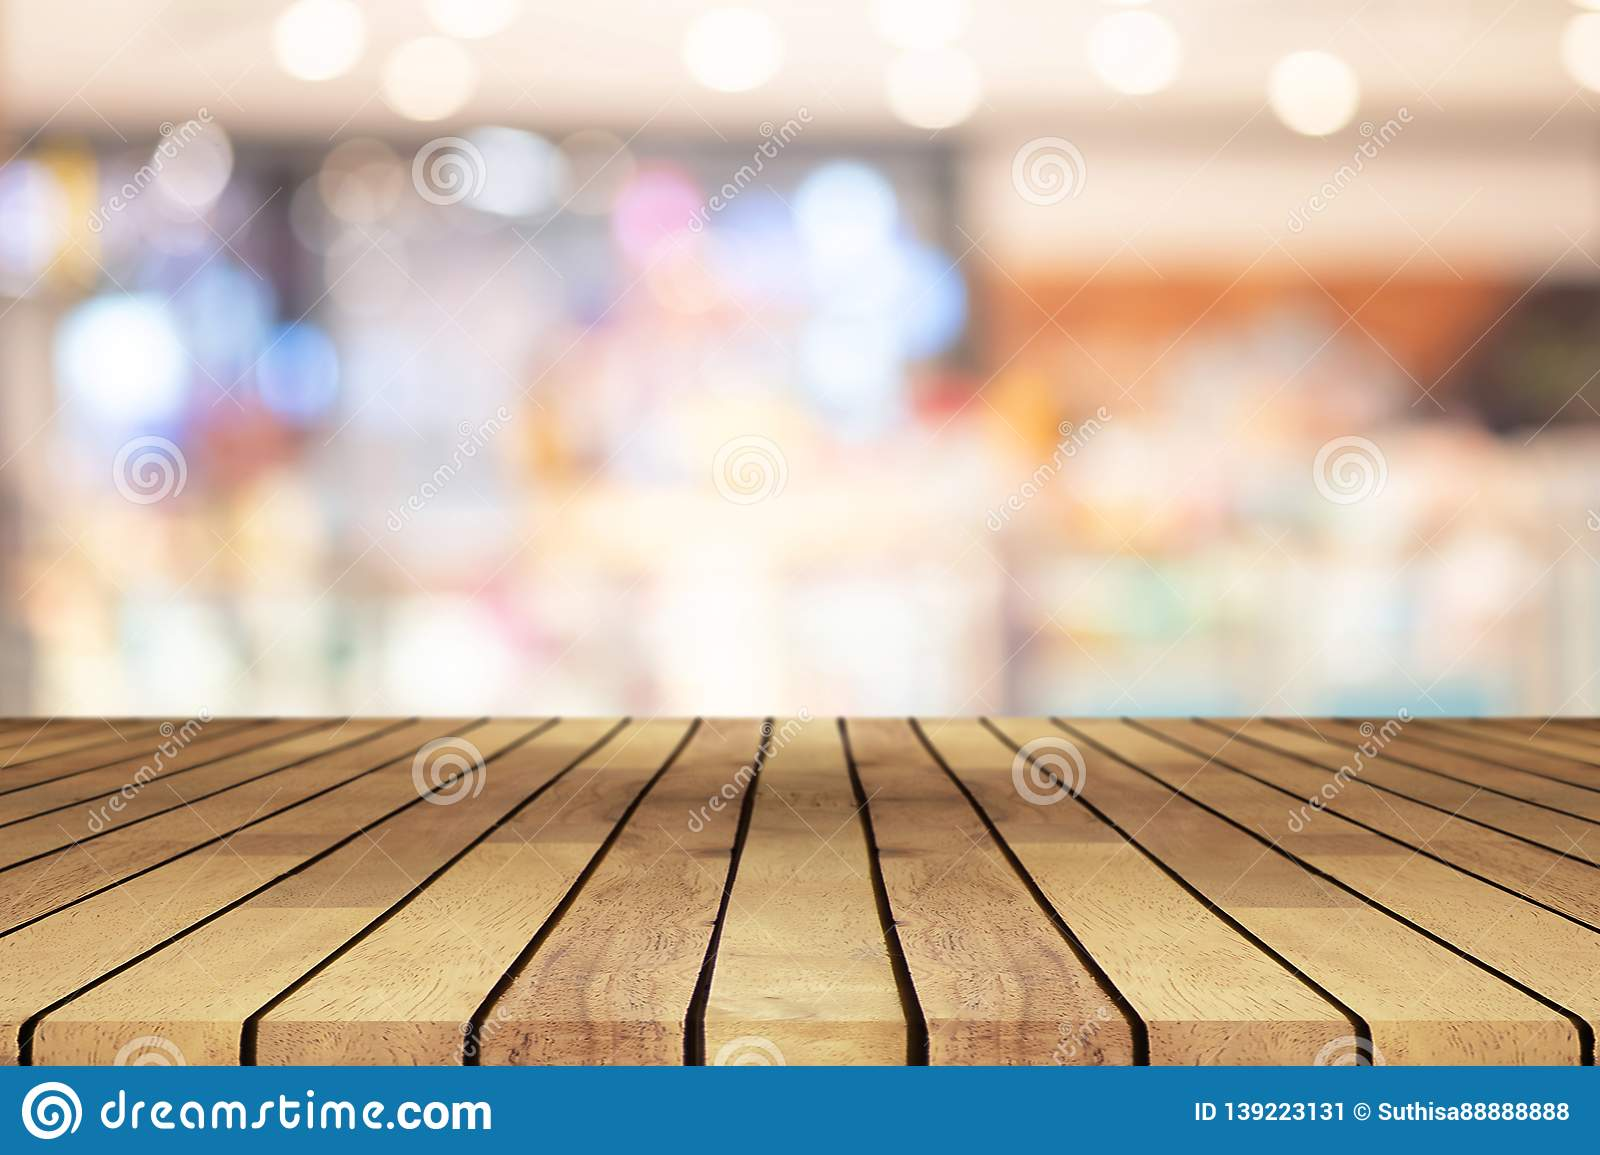 Perspective Wooden Table On Top Over Blur Coffee Shop Background Can Be Used Mock Up For Montage Products Display Or Design Stock Image Image Of Backdrop Food 139223131